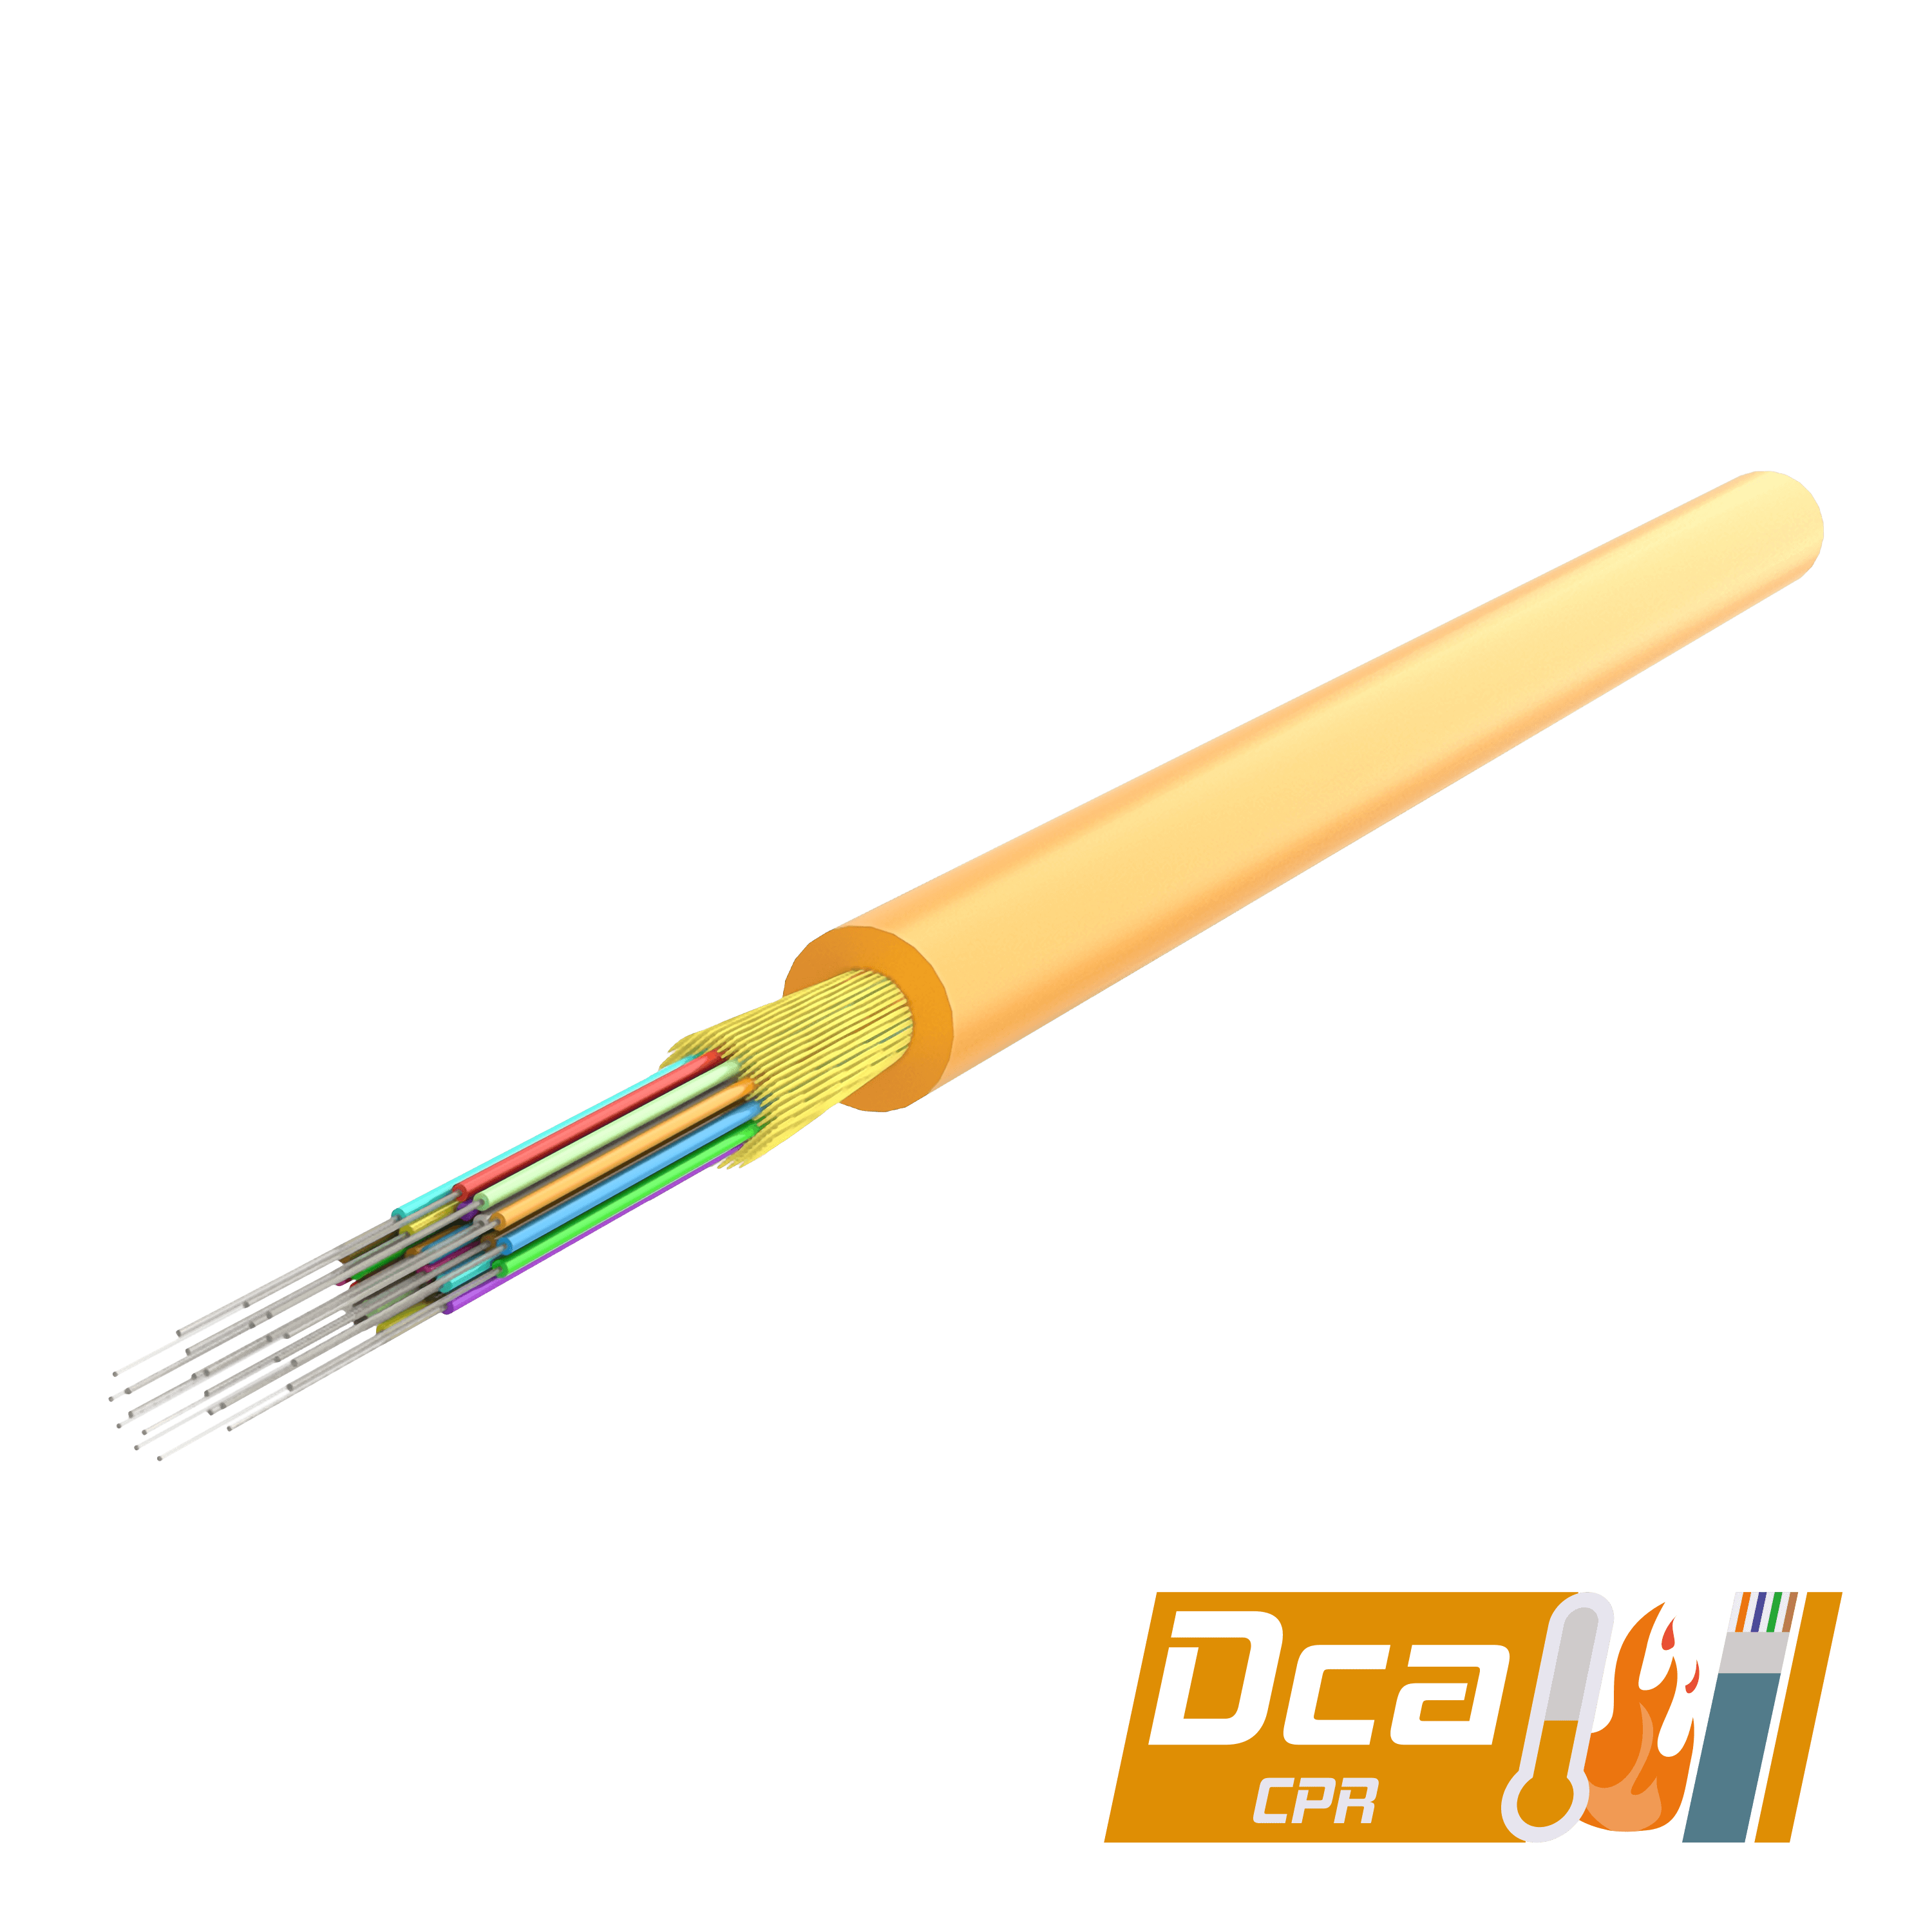 Multi-Fiber Distribution Cable 3.0mm | I-(ZN)H 1x24 | CPR: Dca | 1000 meters